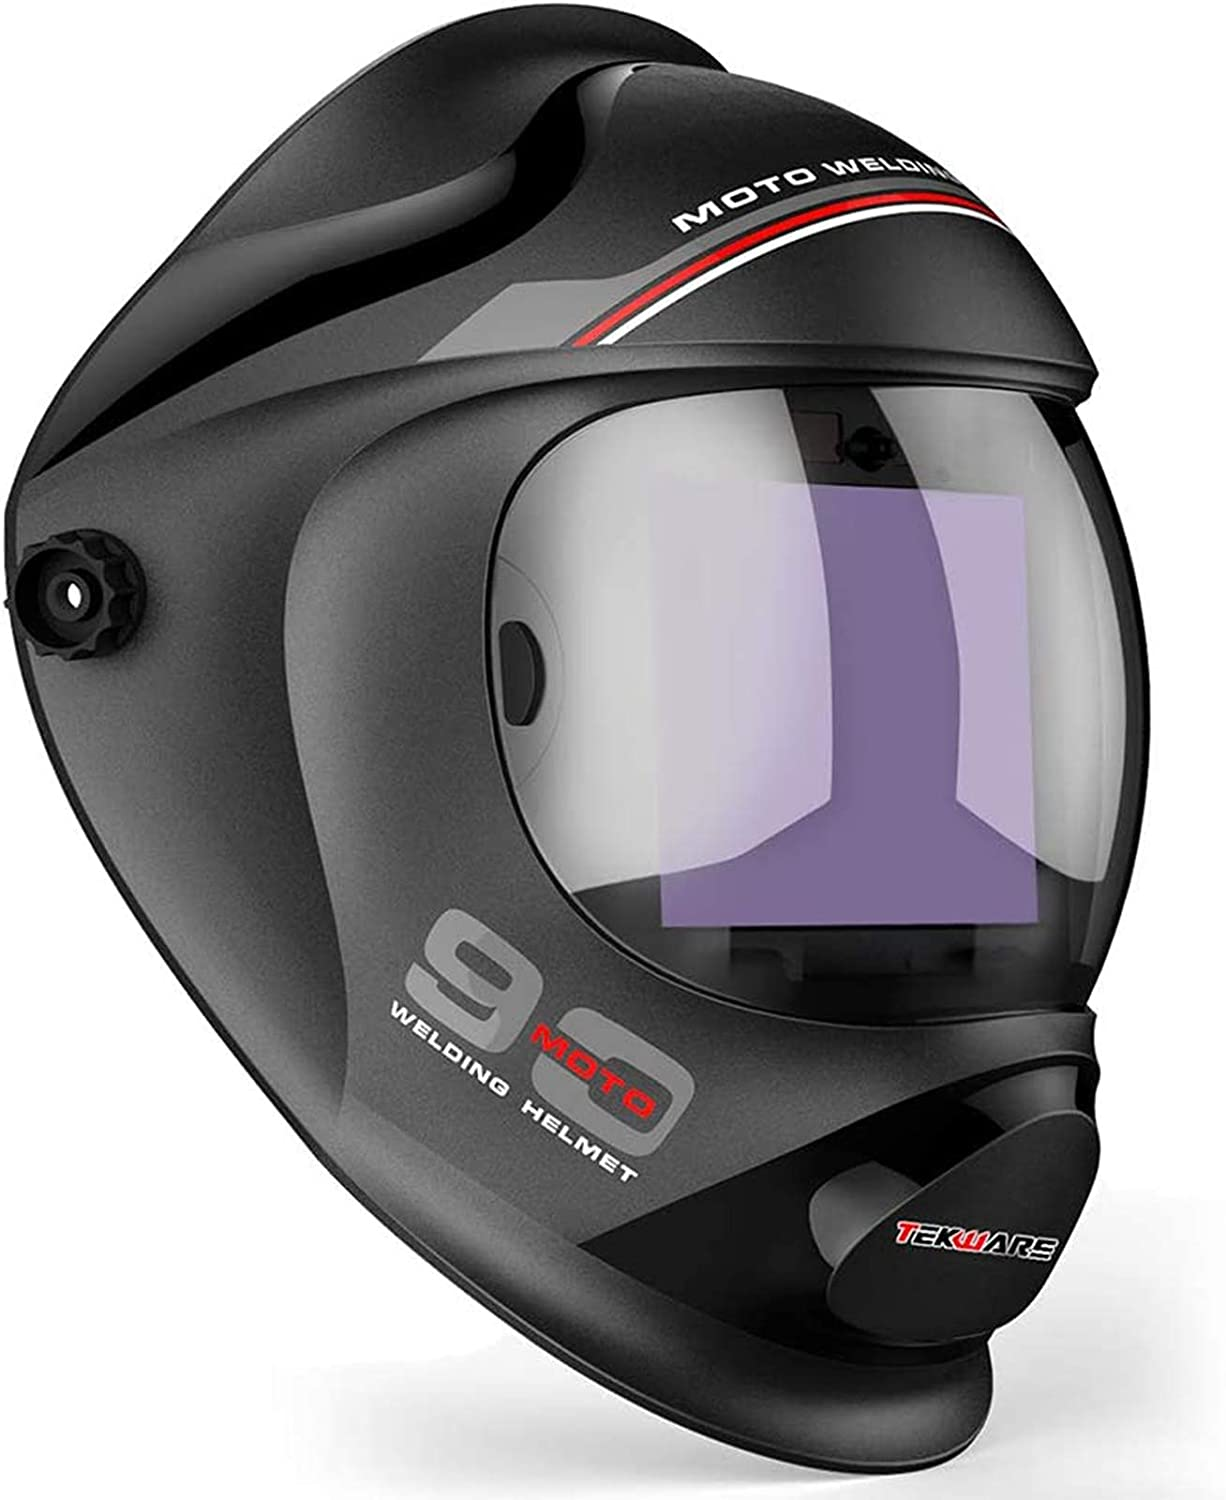 Top protection with ultra large viewing welding helmet: Tekware WH009--BLACK/MOTO90